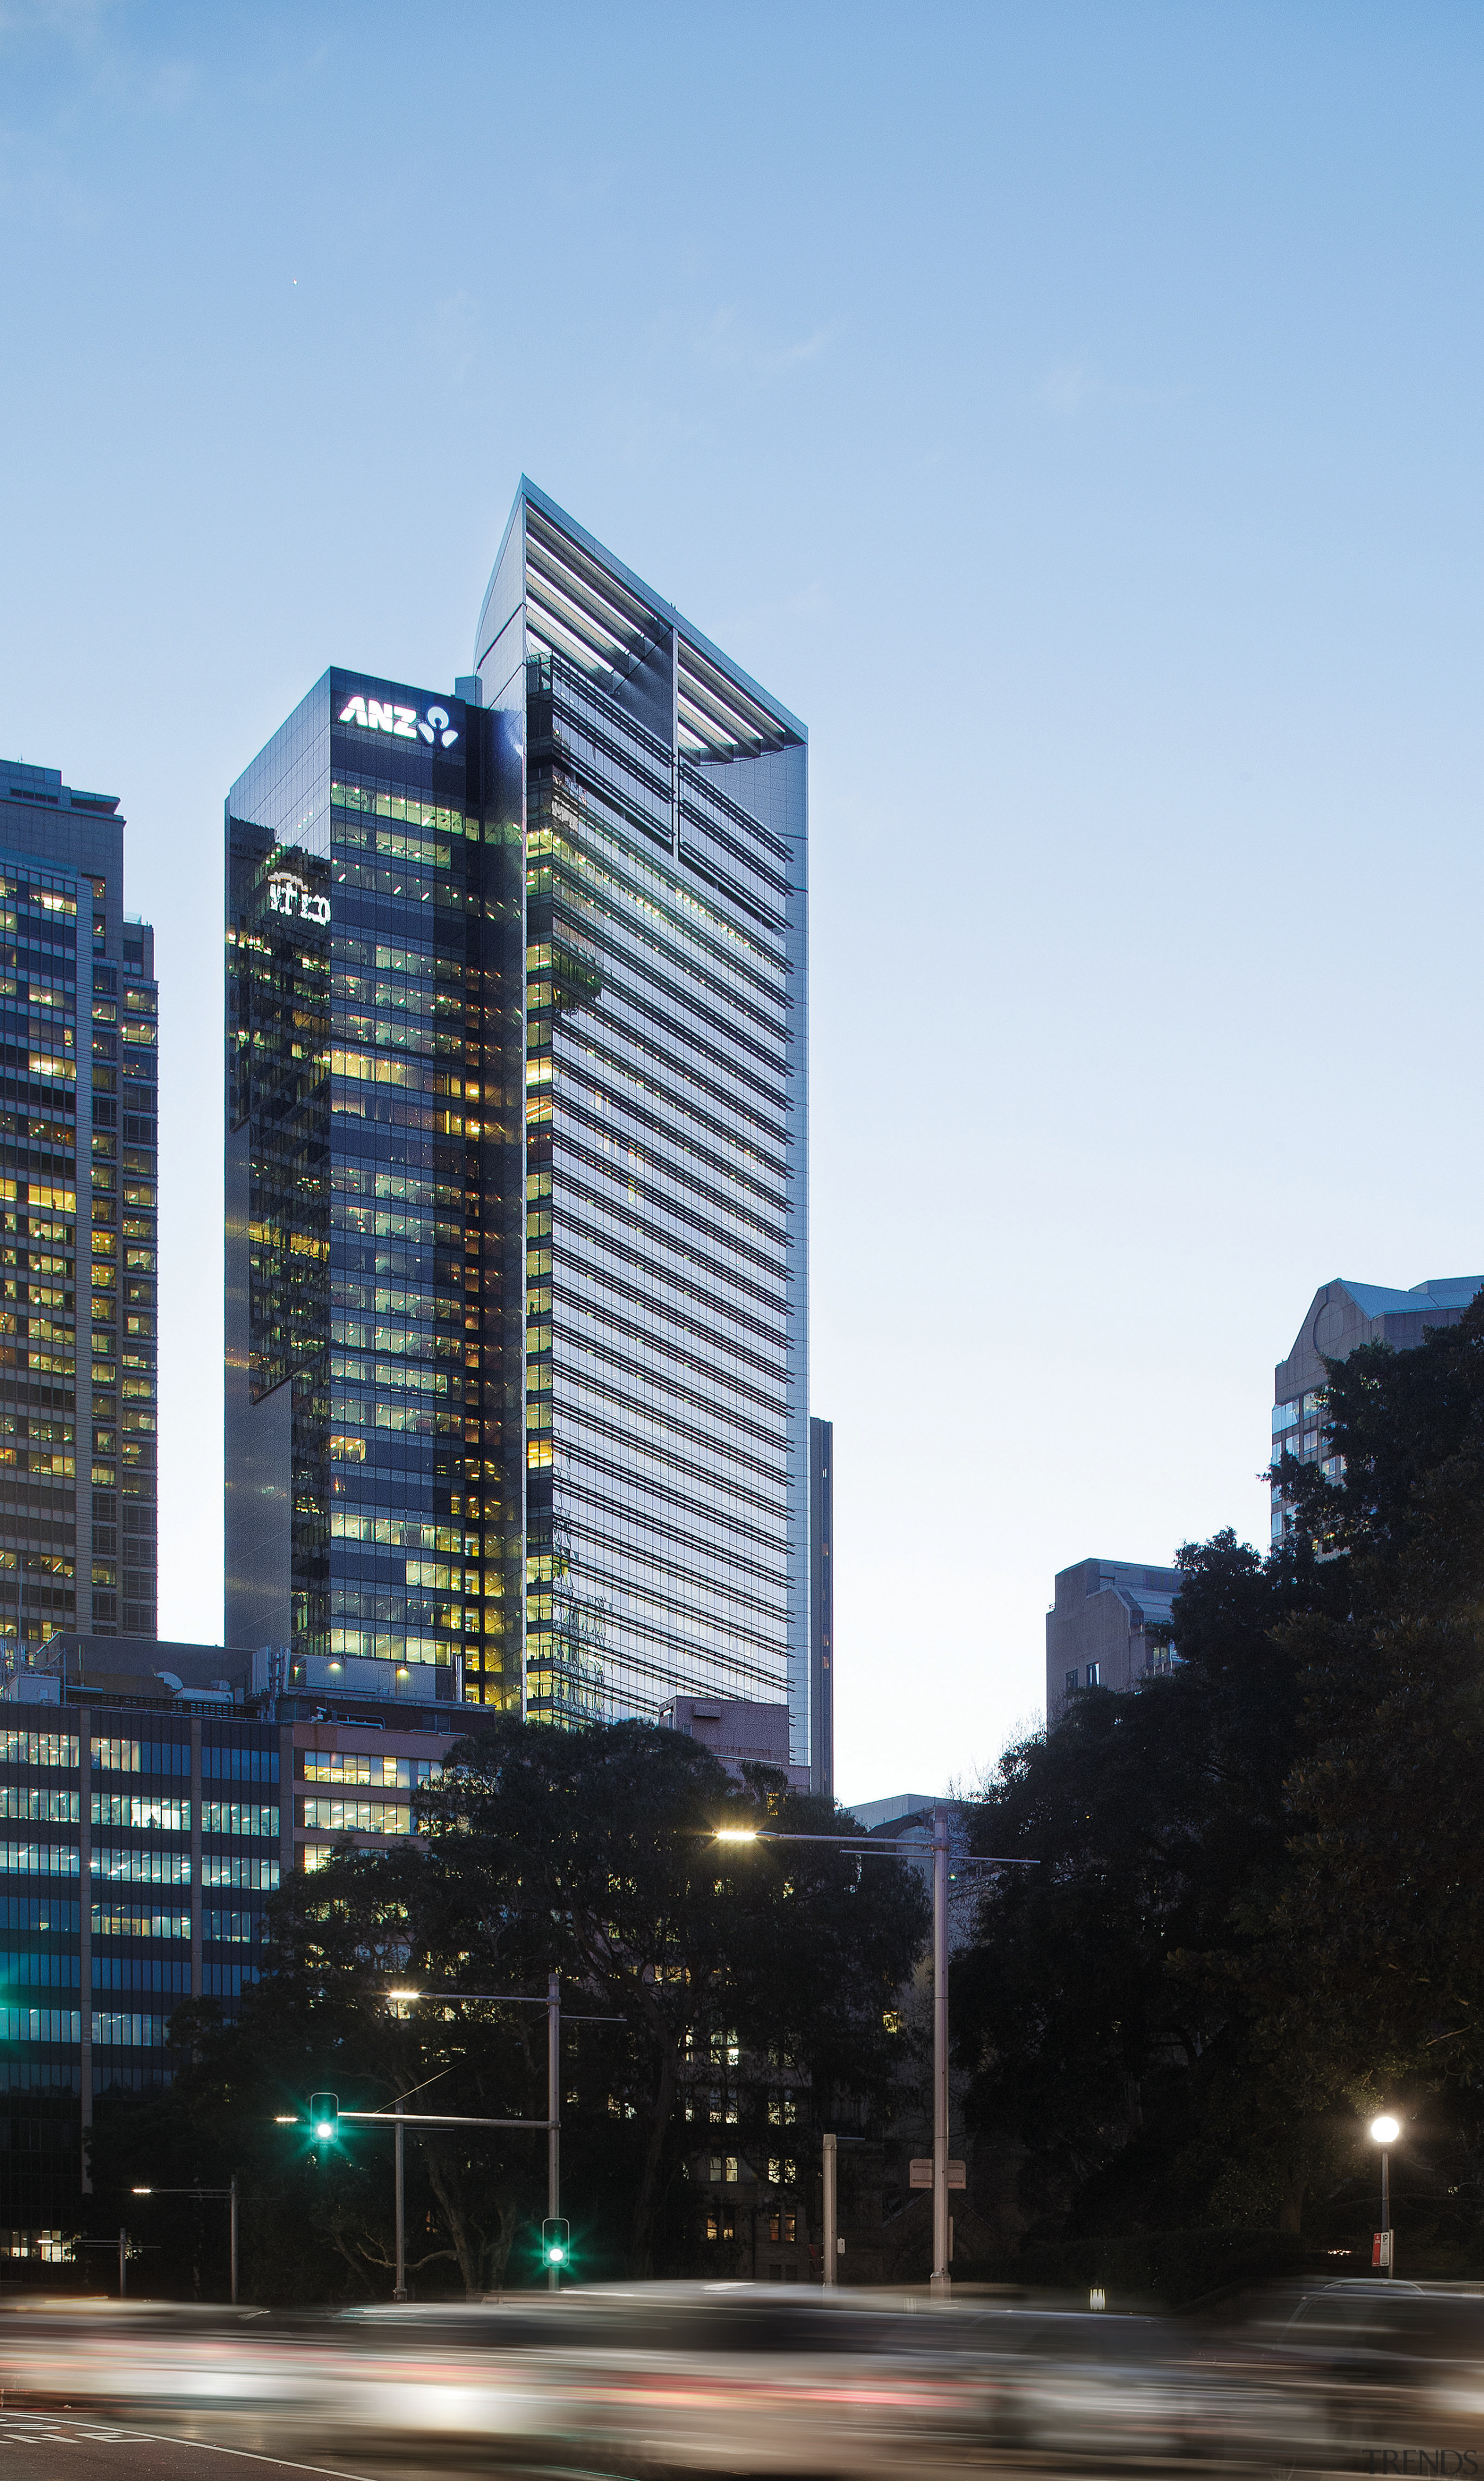 The ANZ Tower features a louvre rooftop. - architecture, building, city, cityscape, commercial building, condominium, corporate headquarters, daytime, downtown, facade, headquarters, hotel, landmark, metropolis, metropolitan area, mixed use, real estate, reflection, residential area, sky, skyline, skyscraper, tower, tower block, urban area, black, white